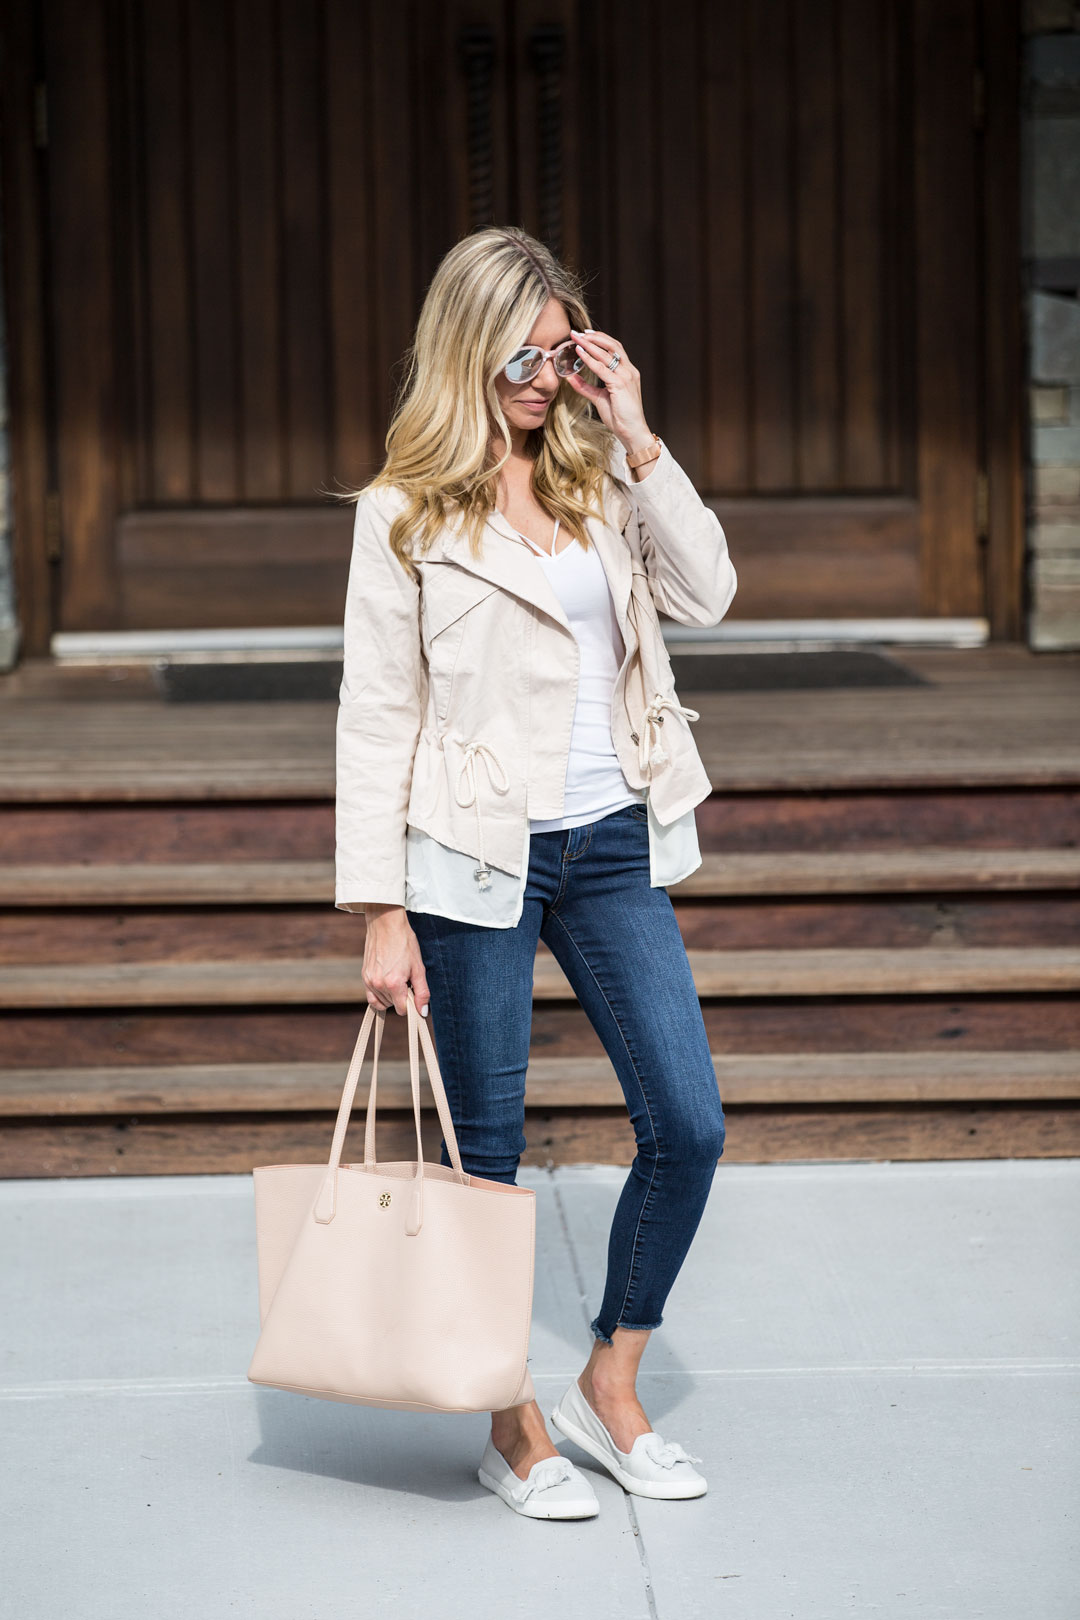 blush tory burch bag and blush cropped trench coat